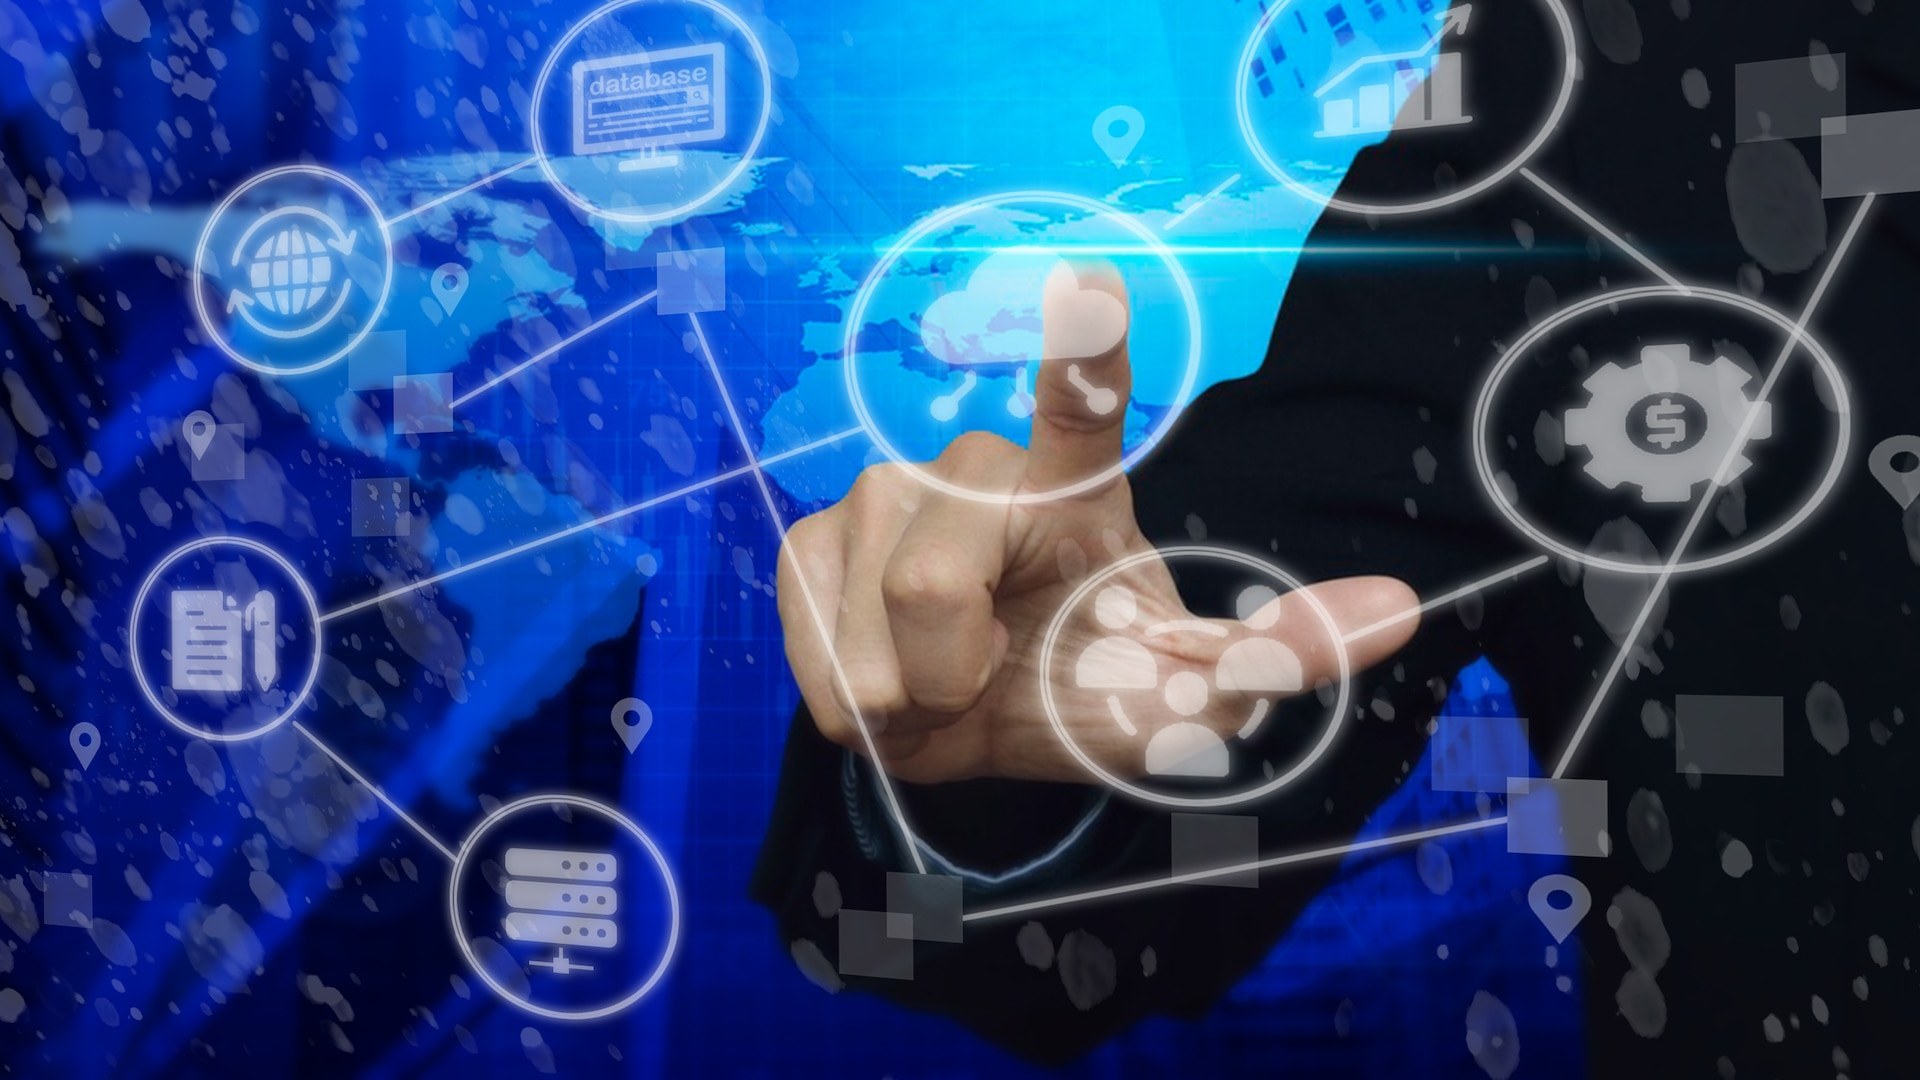 Graphic of a finger pointing at icons on a computer screen. Icons represent money, computer, world, etc.